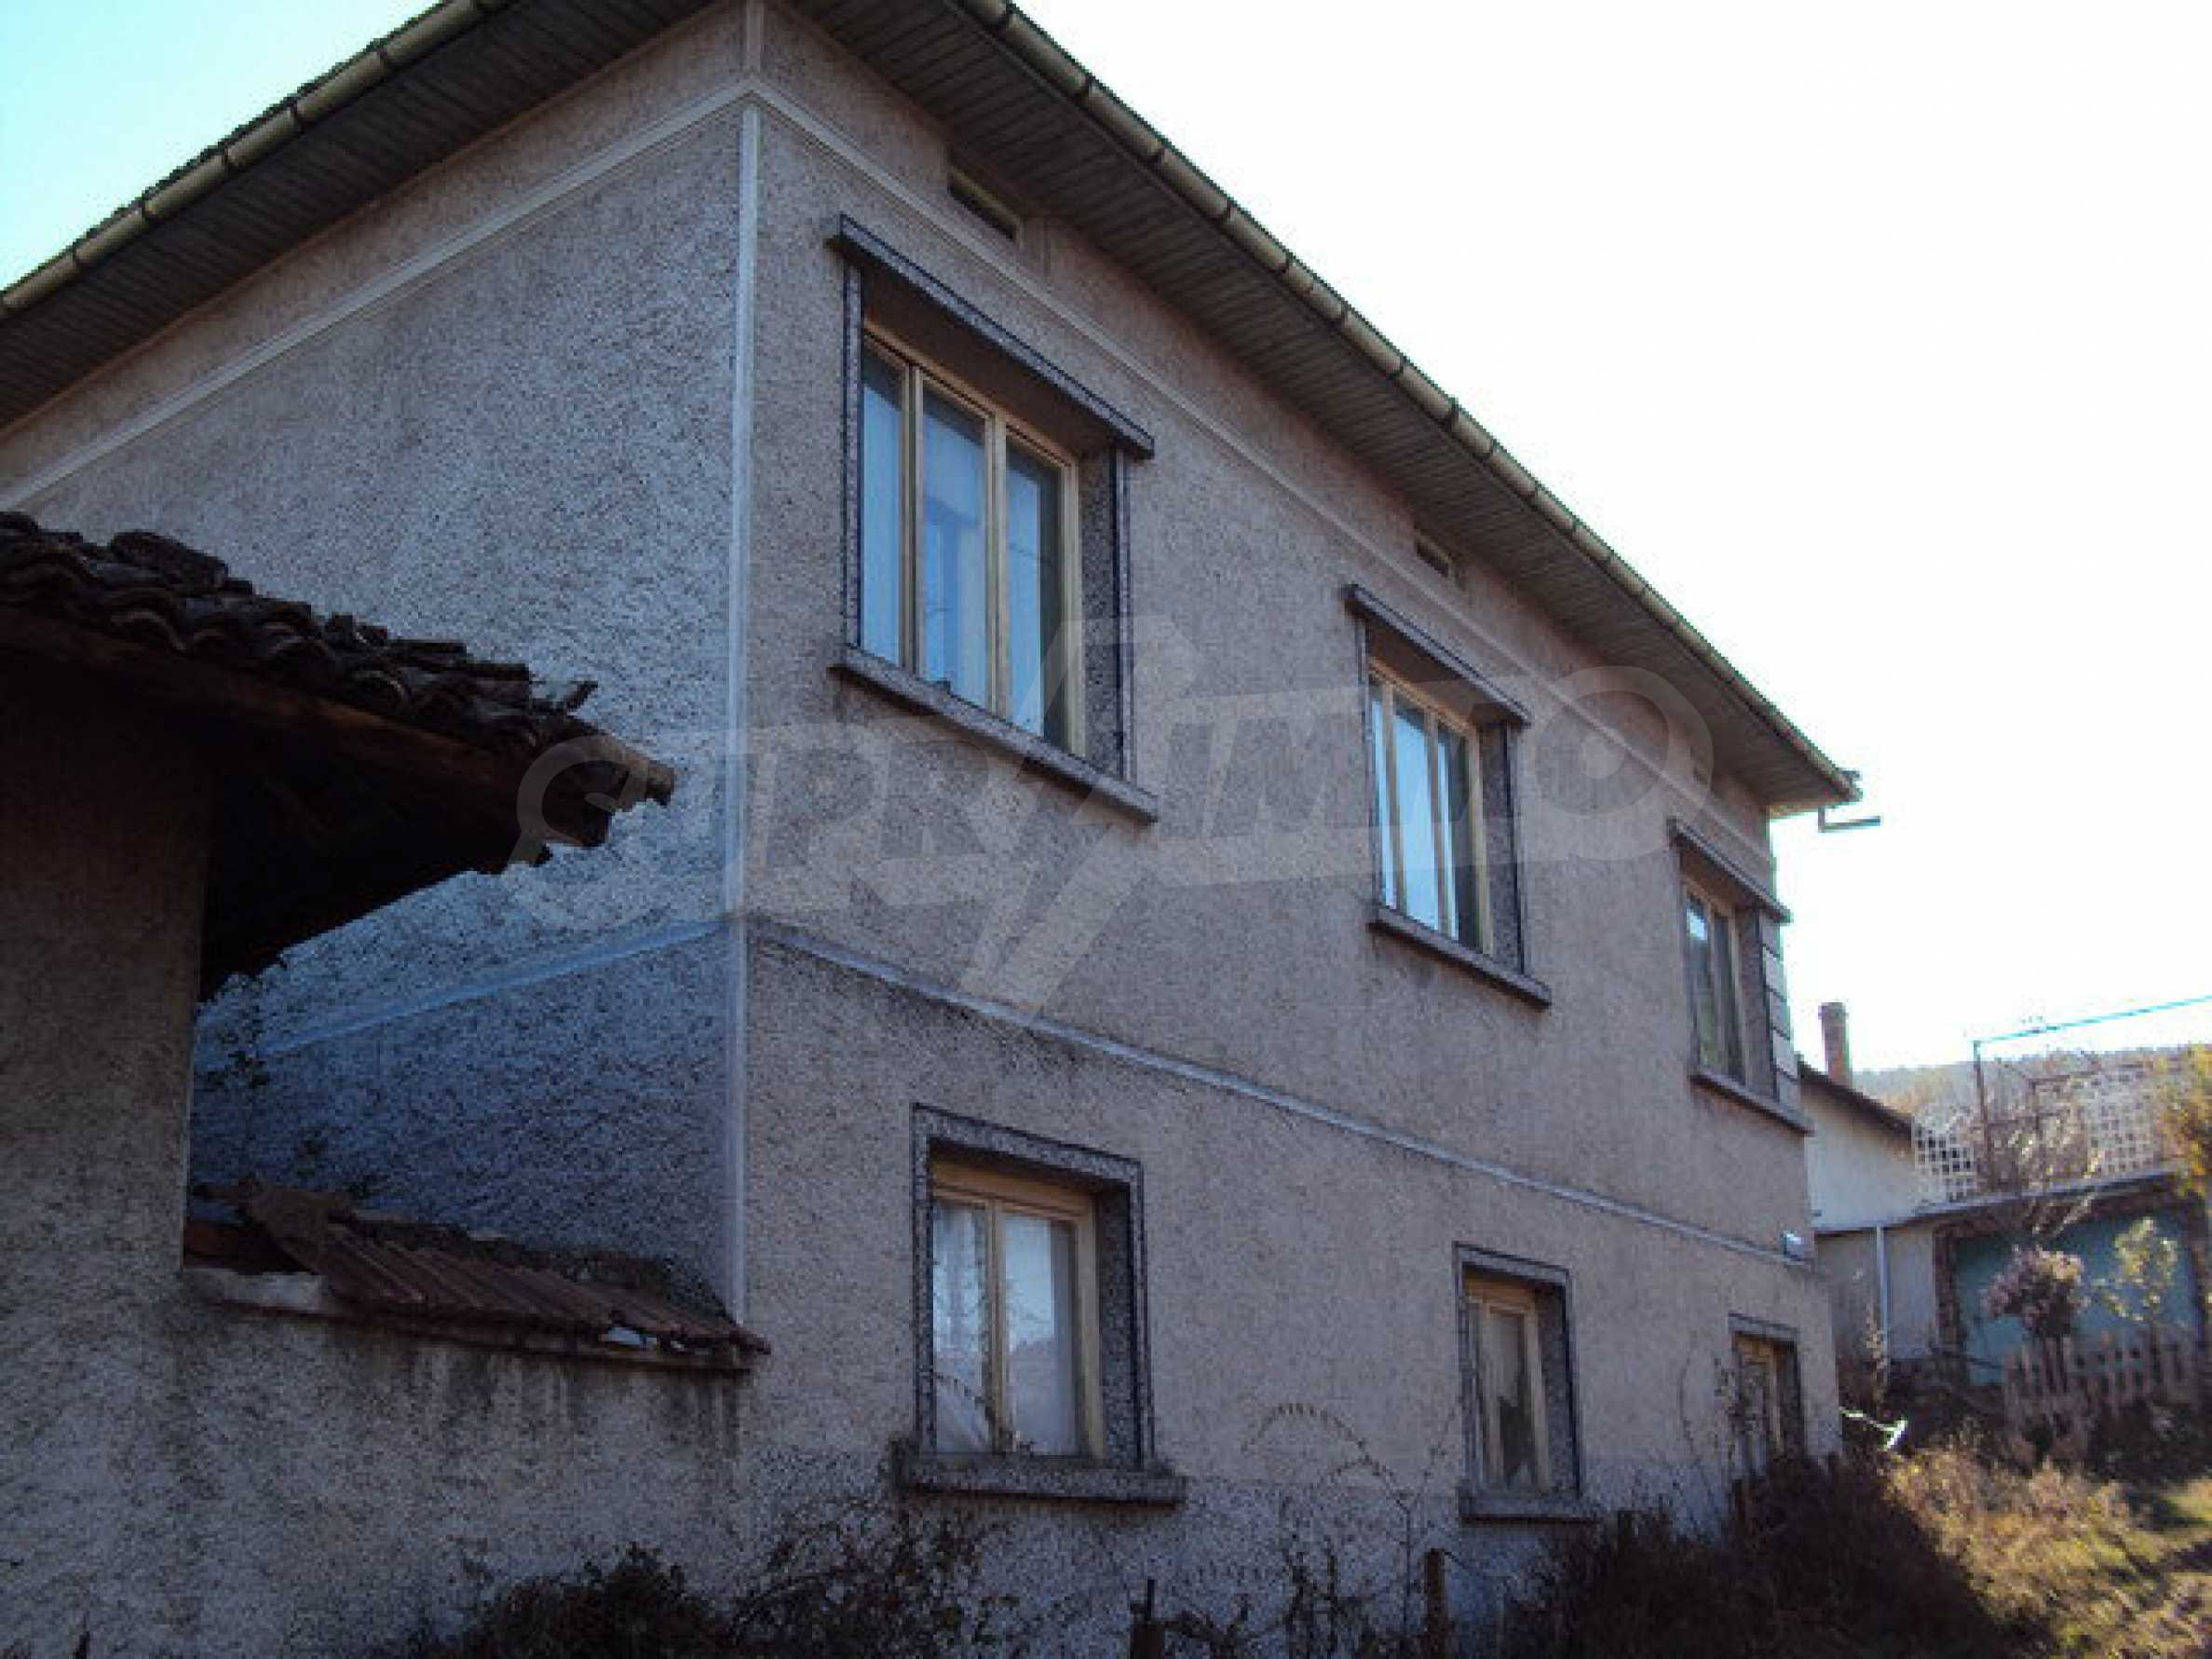 Spacious house in excellent condition in a village 25 km. the old capital of Veliko Tarnovo 7